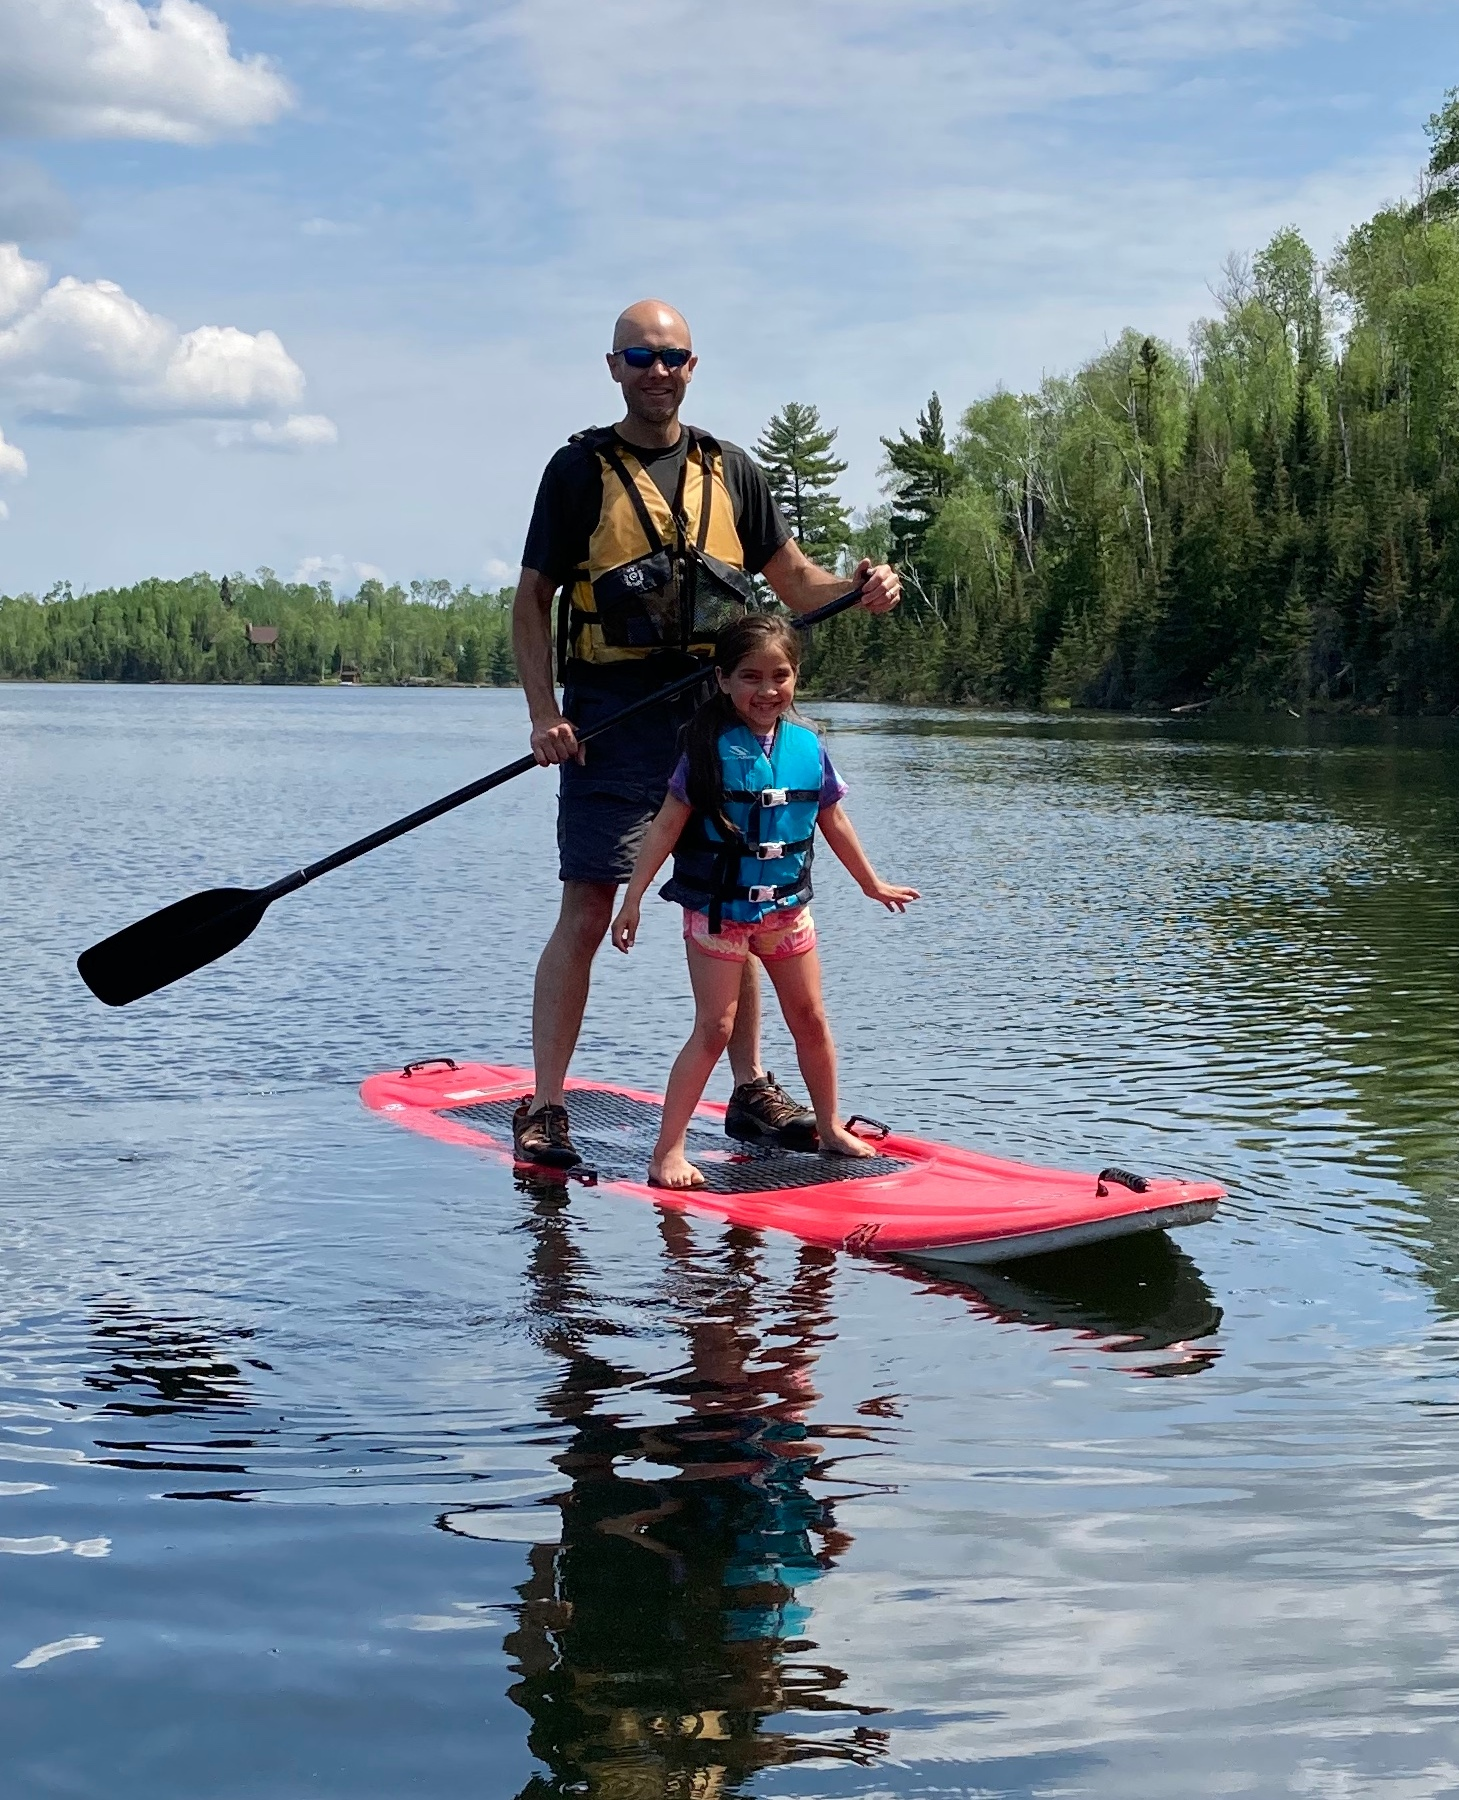 May paddle-boarding Dad on Jasper Lake at Northwind Lodge. Water is still cold!